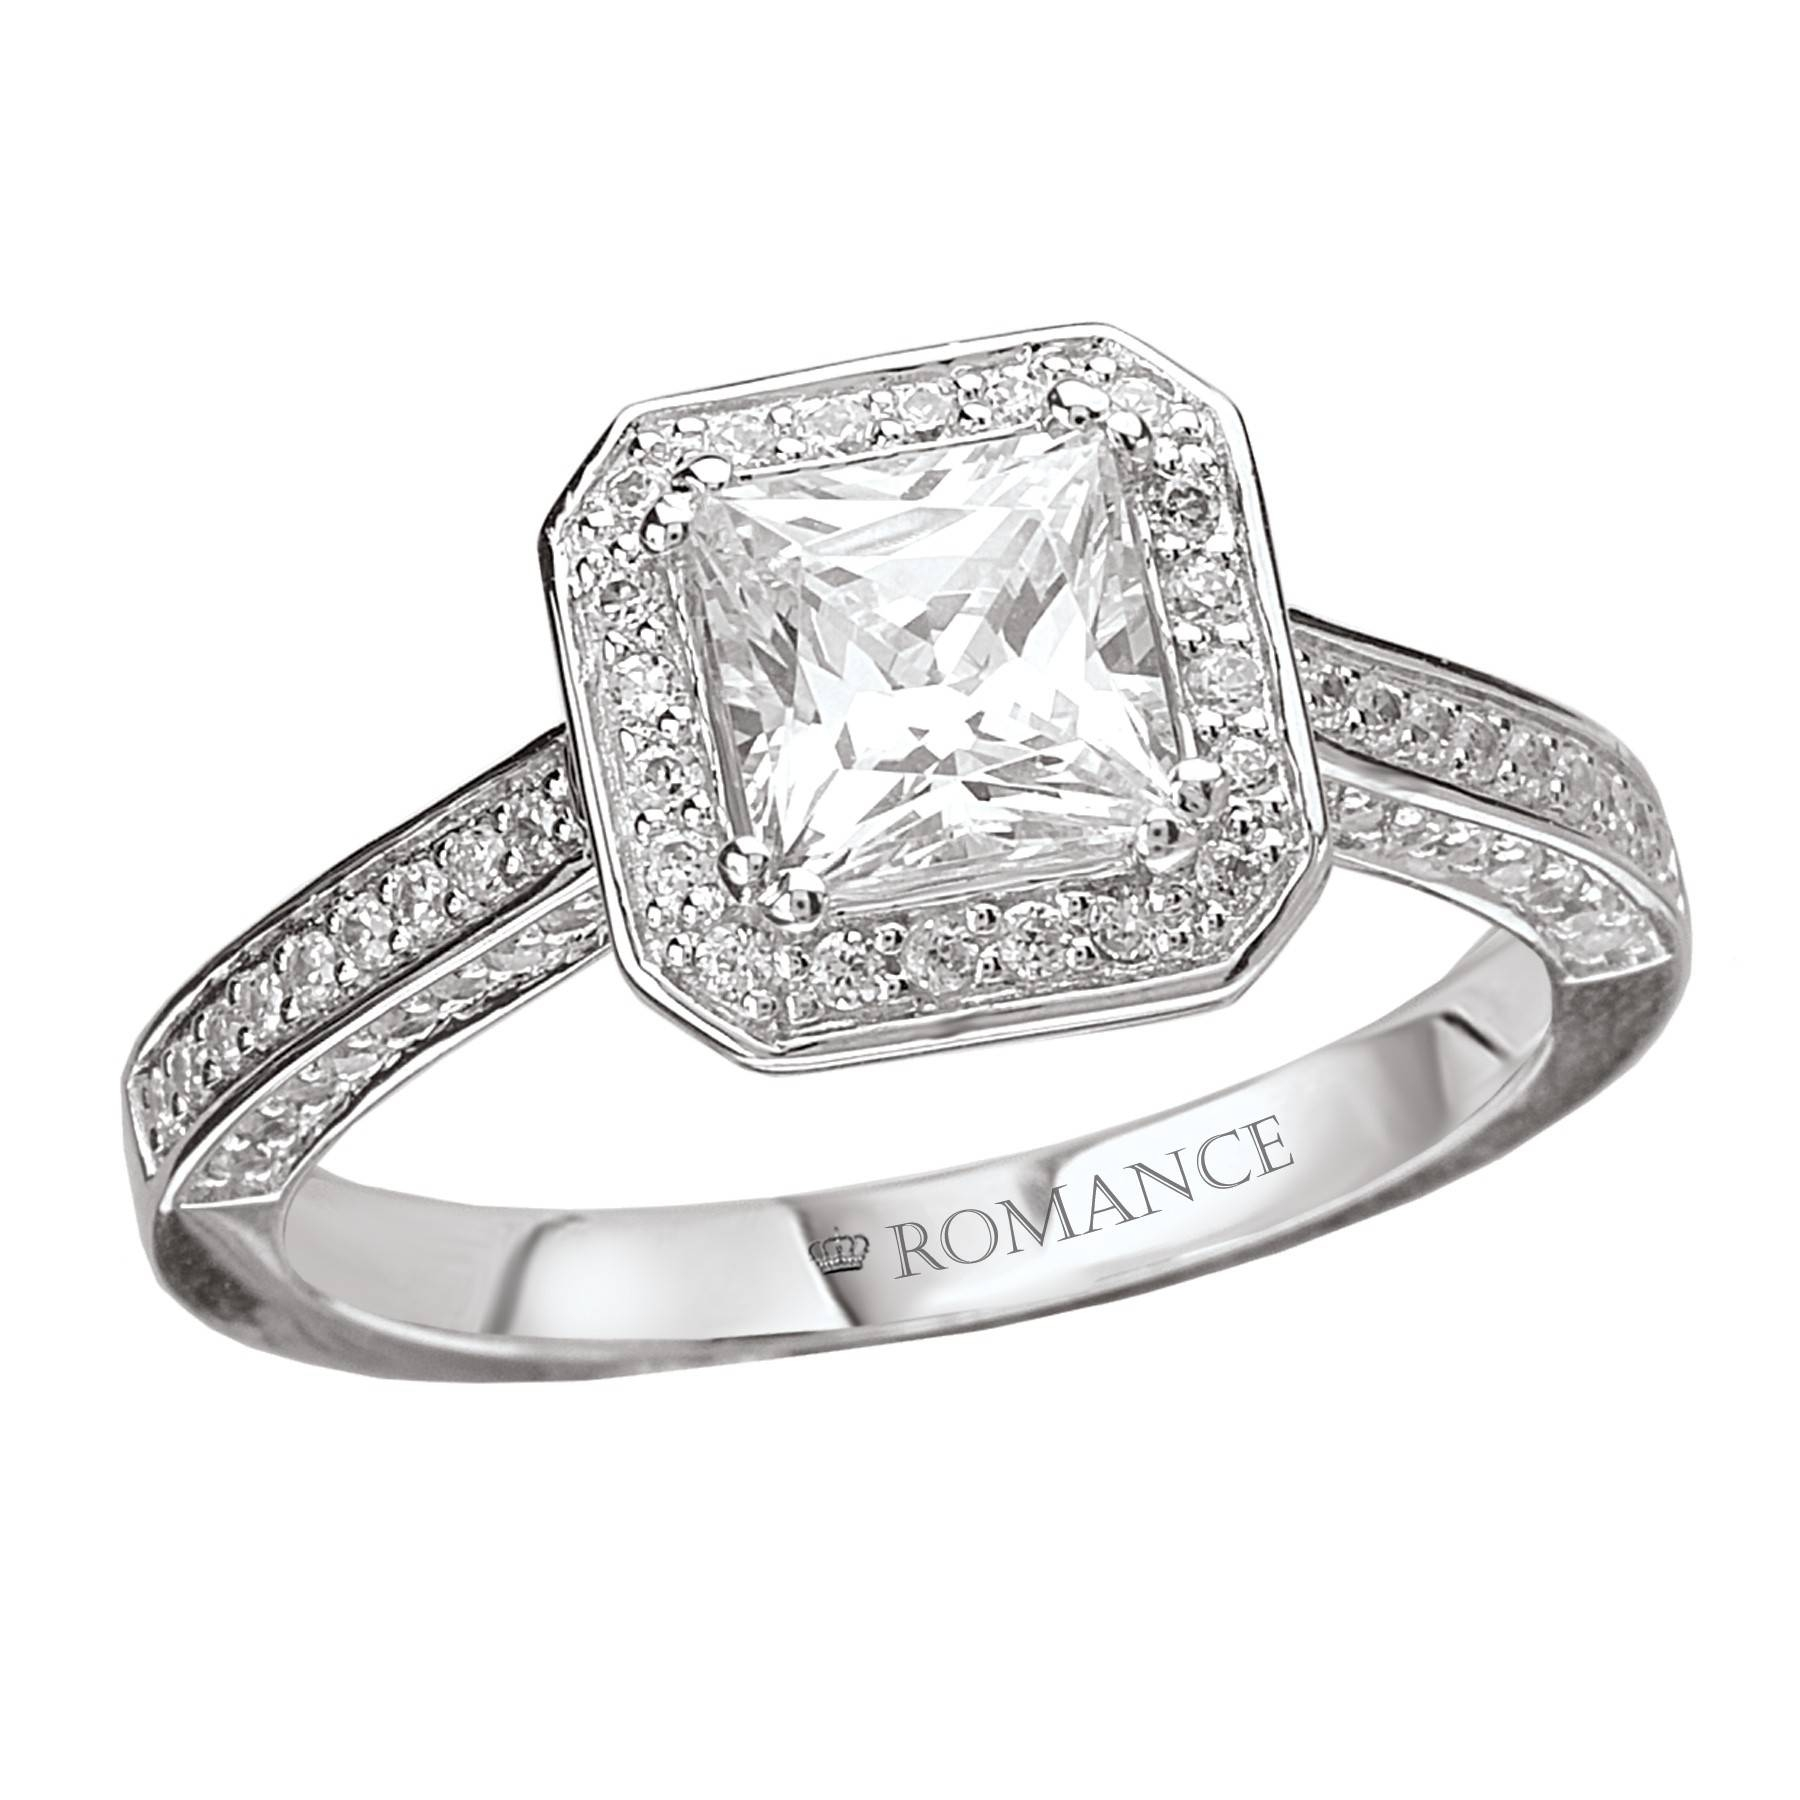 Princess Cut Diamond Engagement Rings – Totally Stunning | Ipunya With Regard To Princess Cut Diamond Wedding Rings (View 9 of 15)